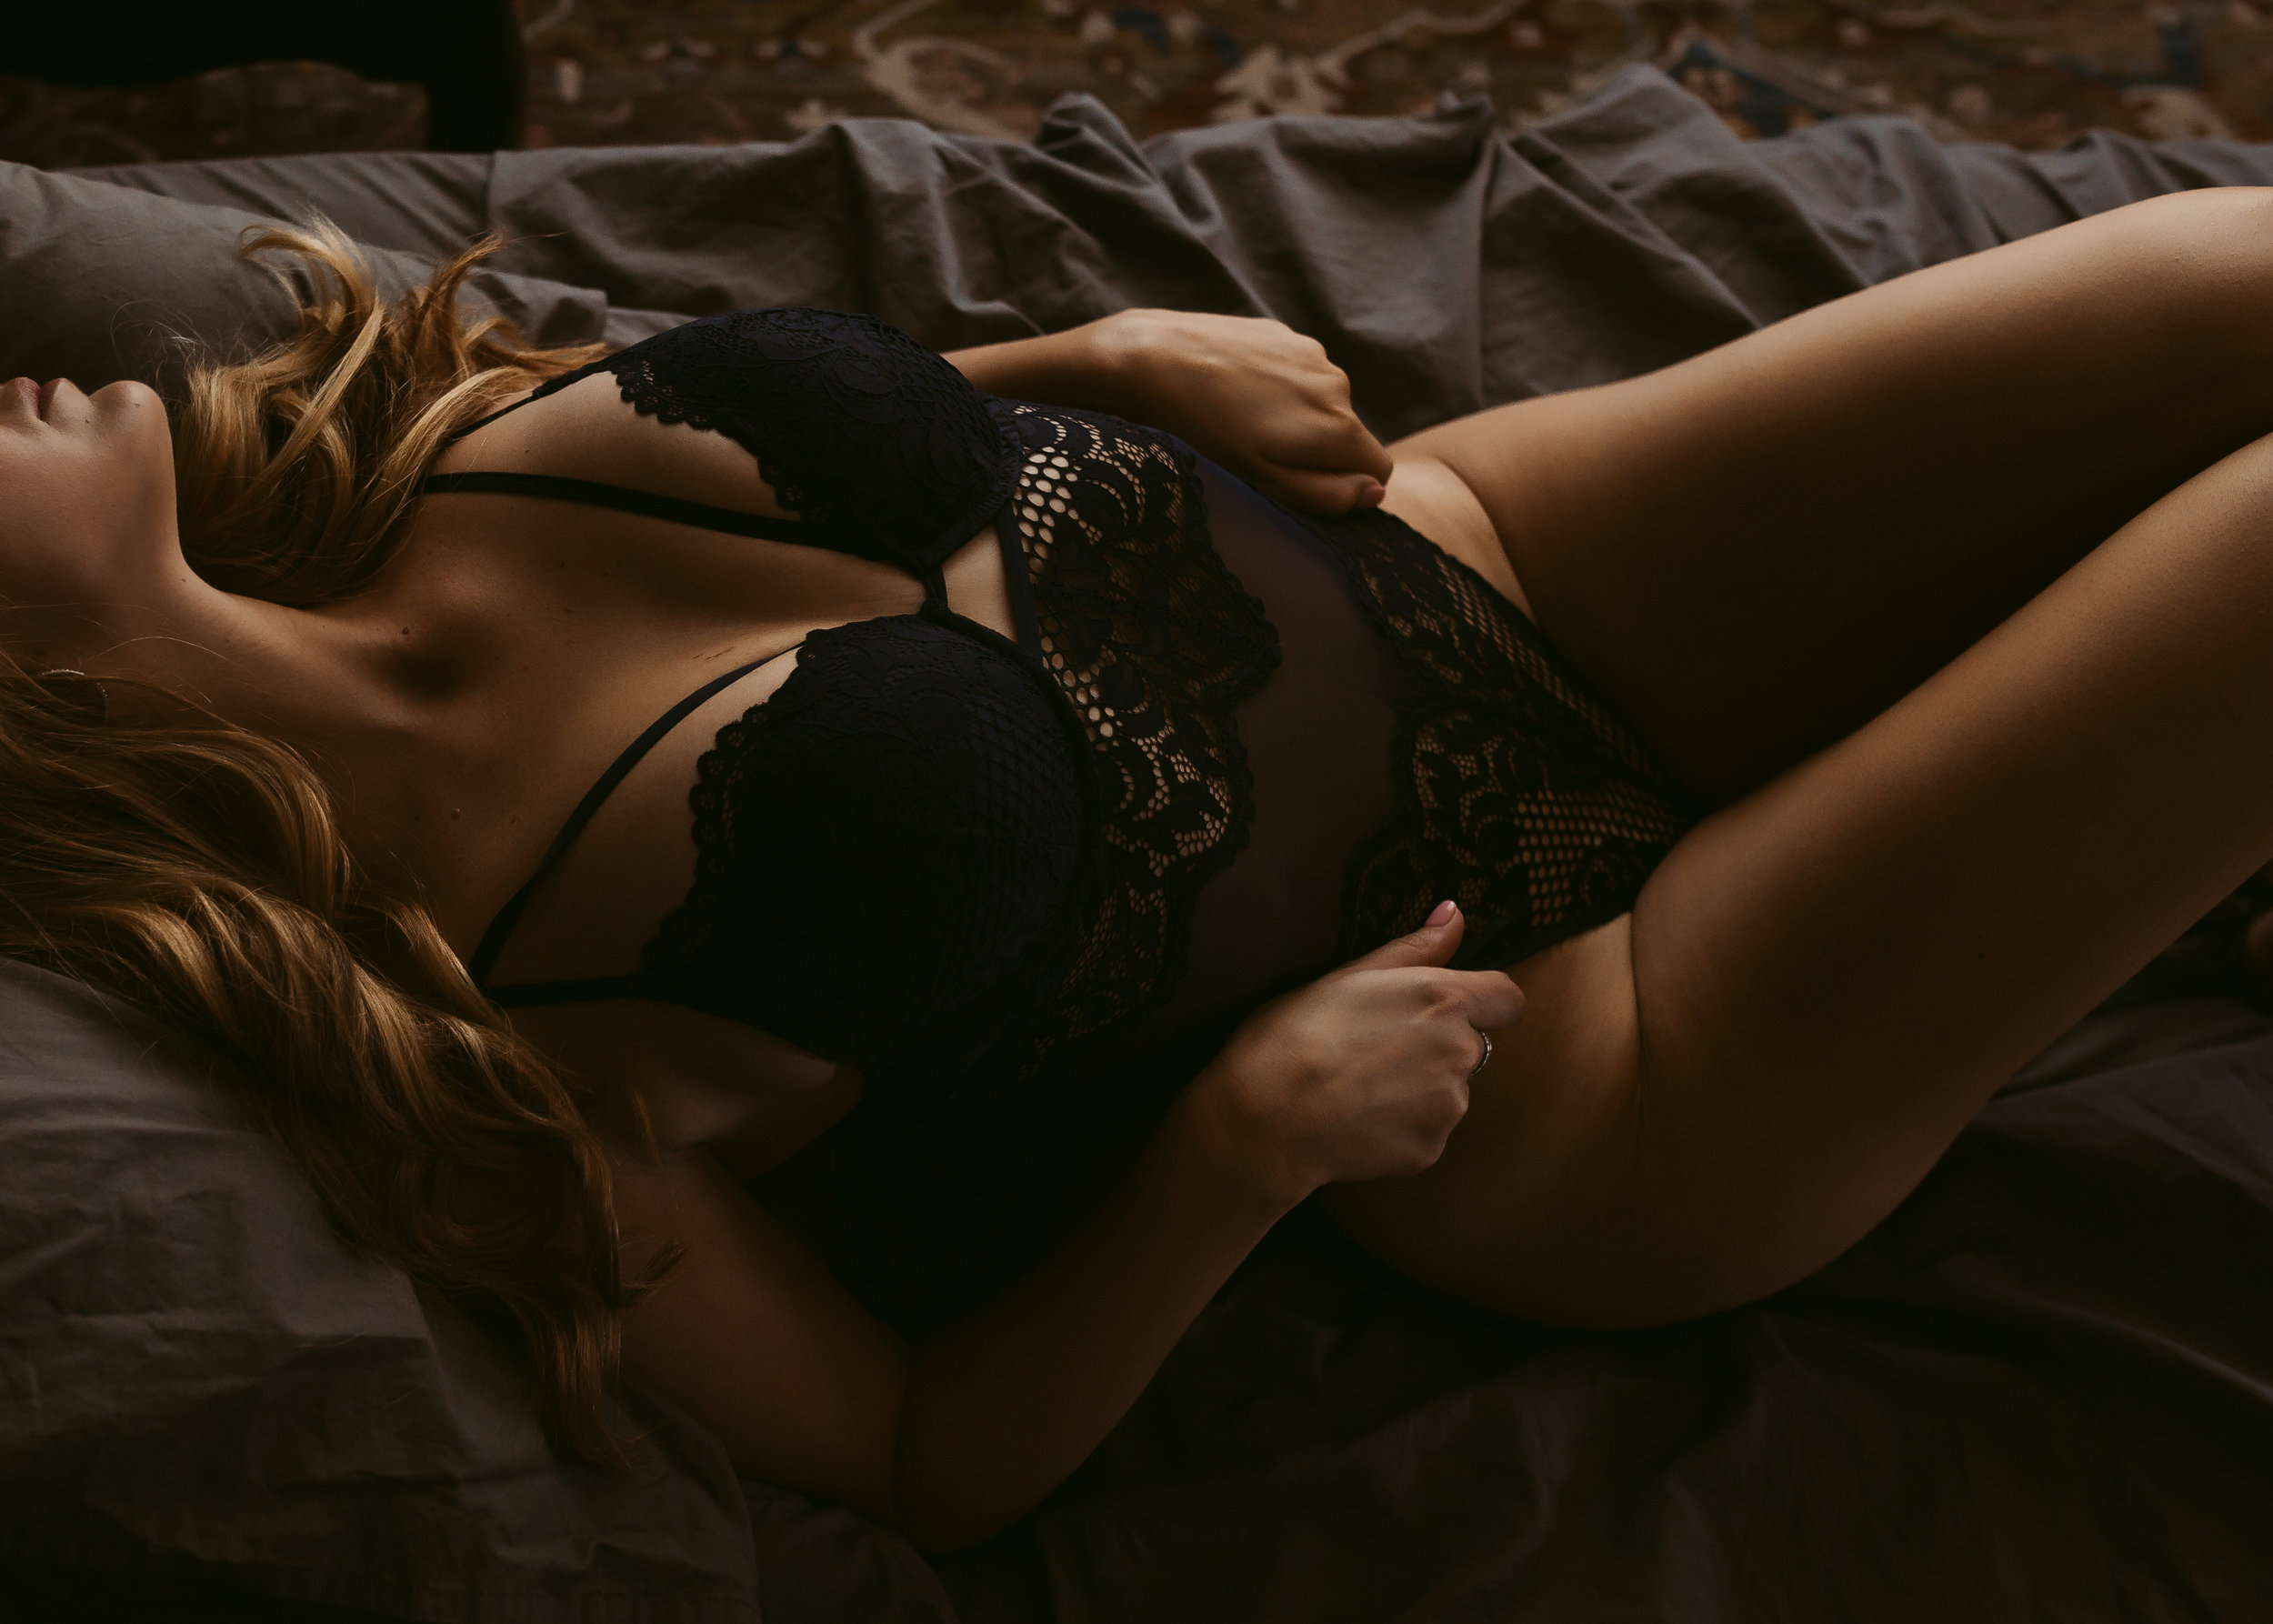 Michigan_Boudoir_Photographer_Butterfly_Boudoir_98.JPG